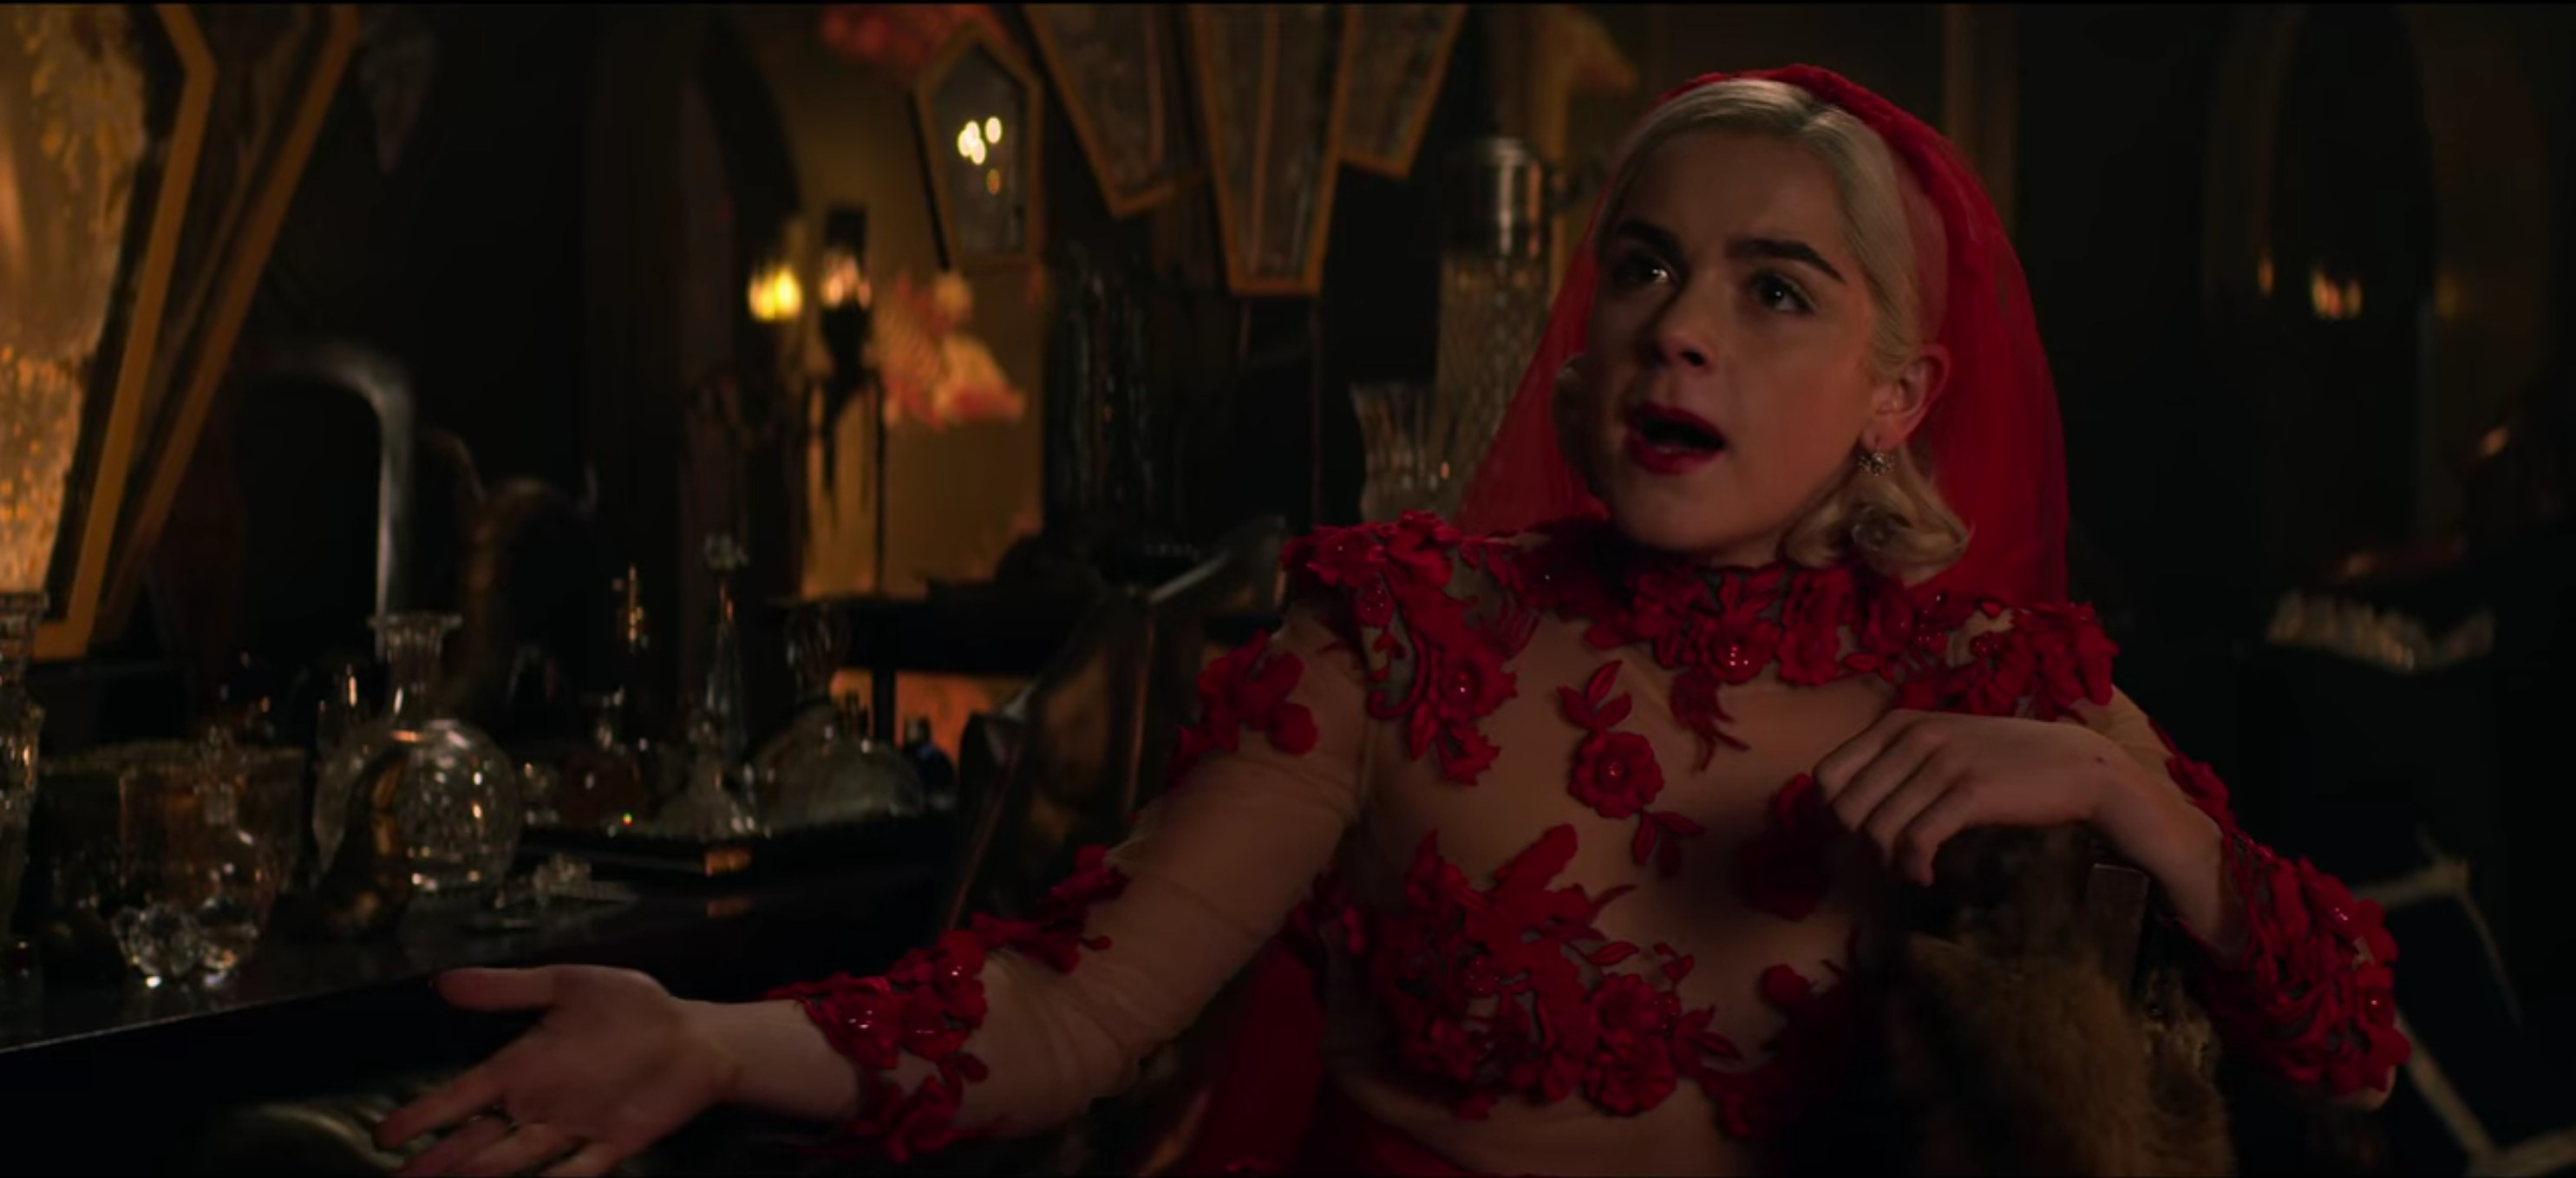 Sabrina in a red wedding dress and veil